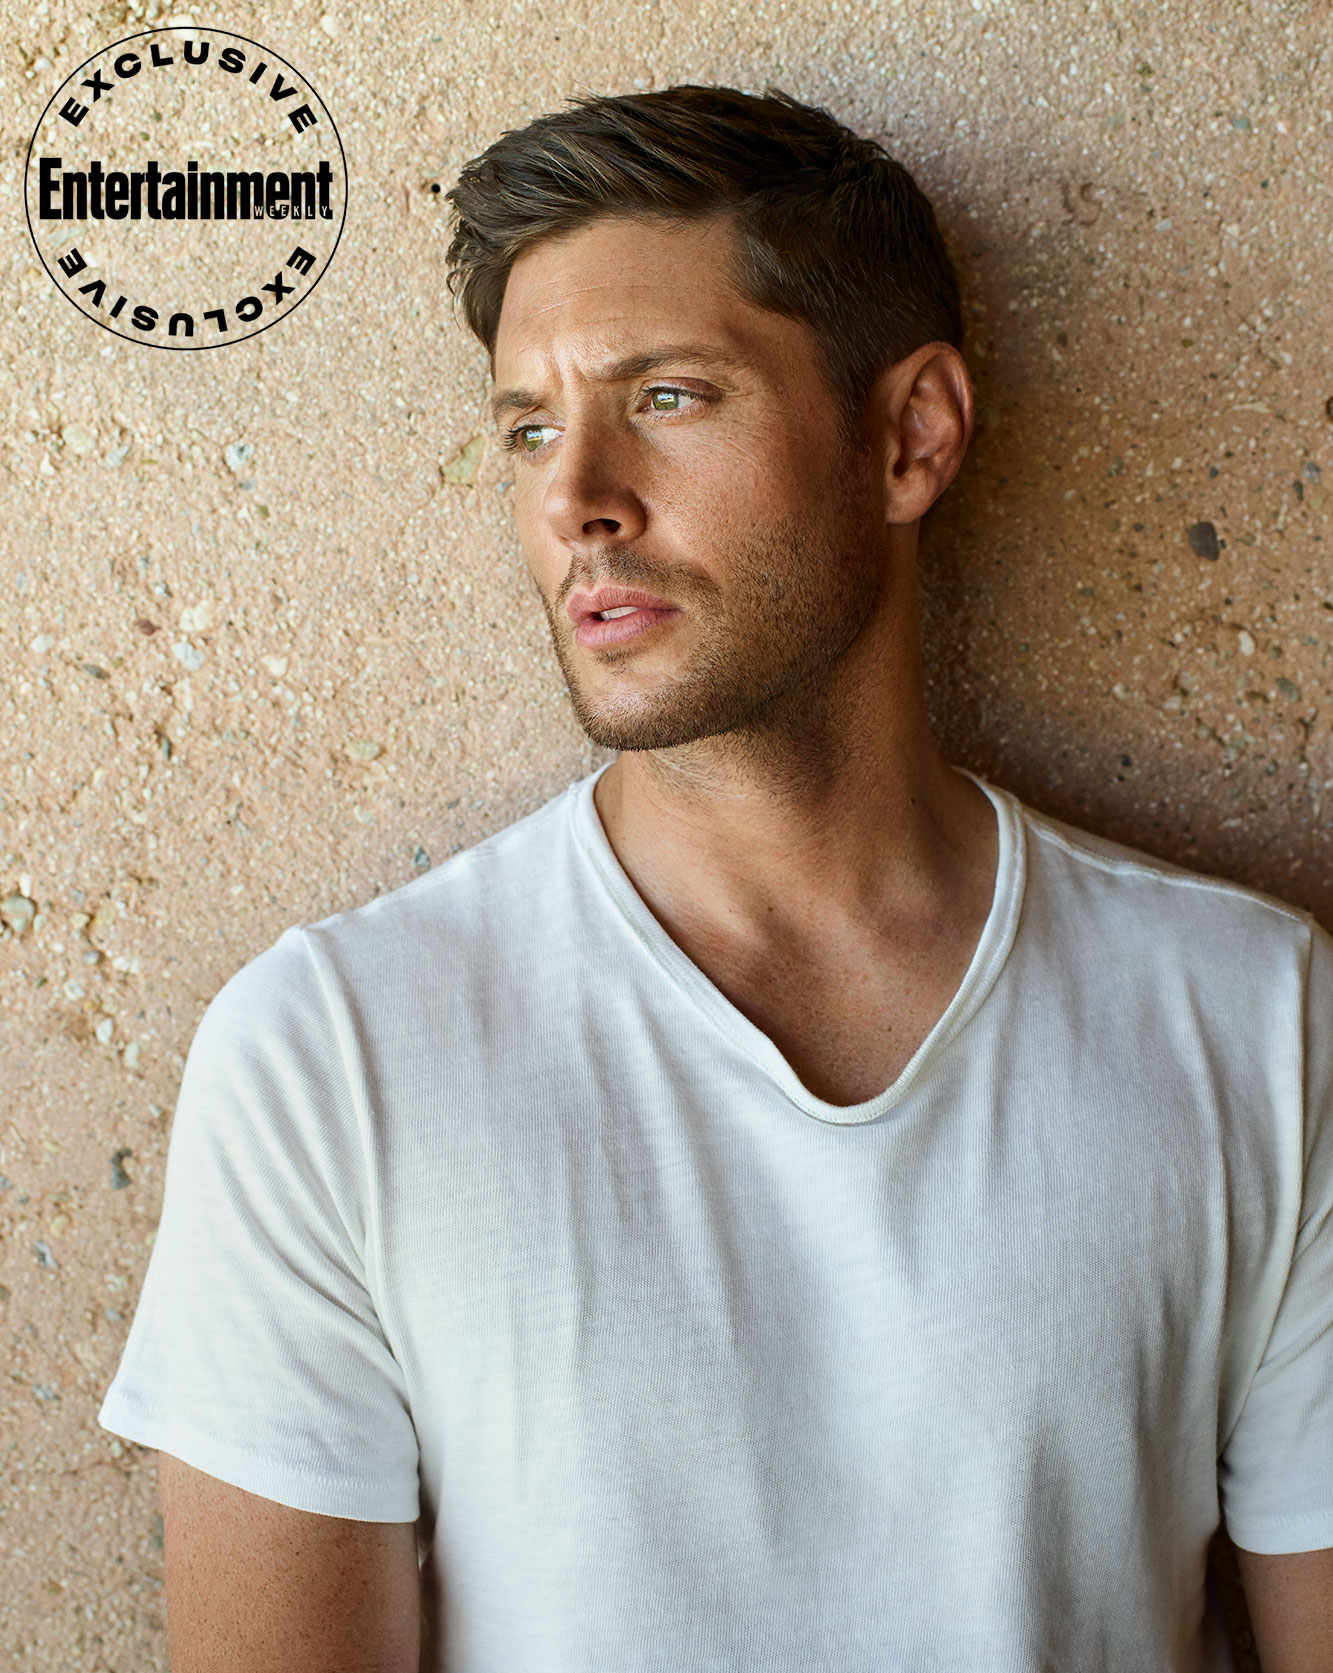 EW Final photo shoot Jensen byPeggySirota